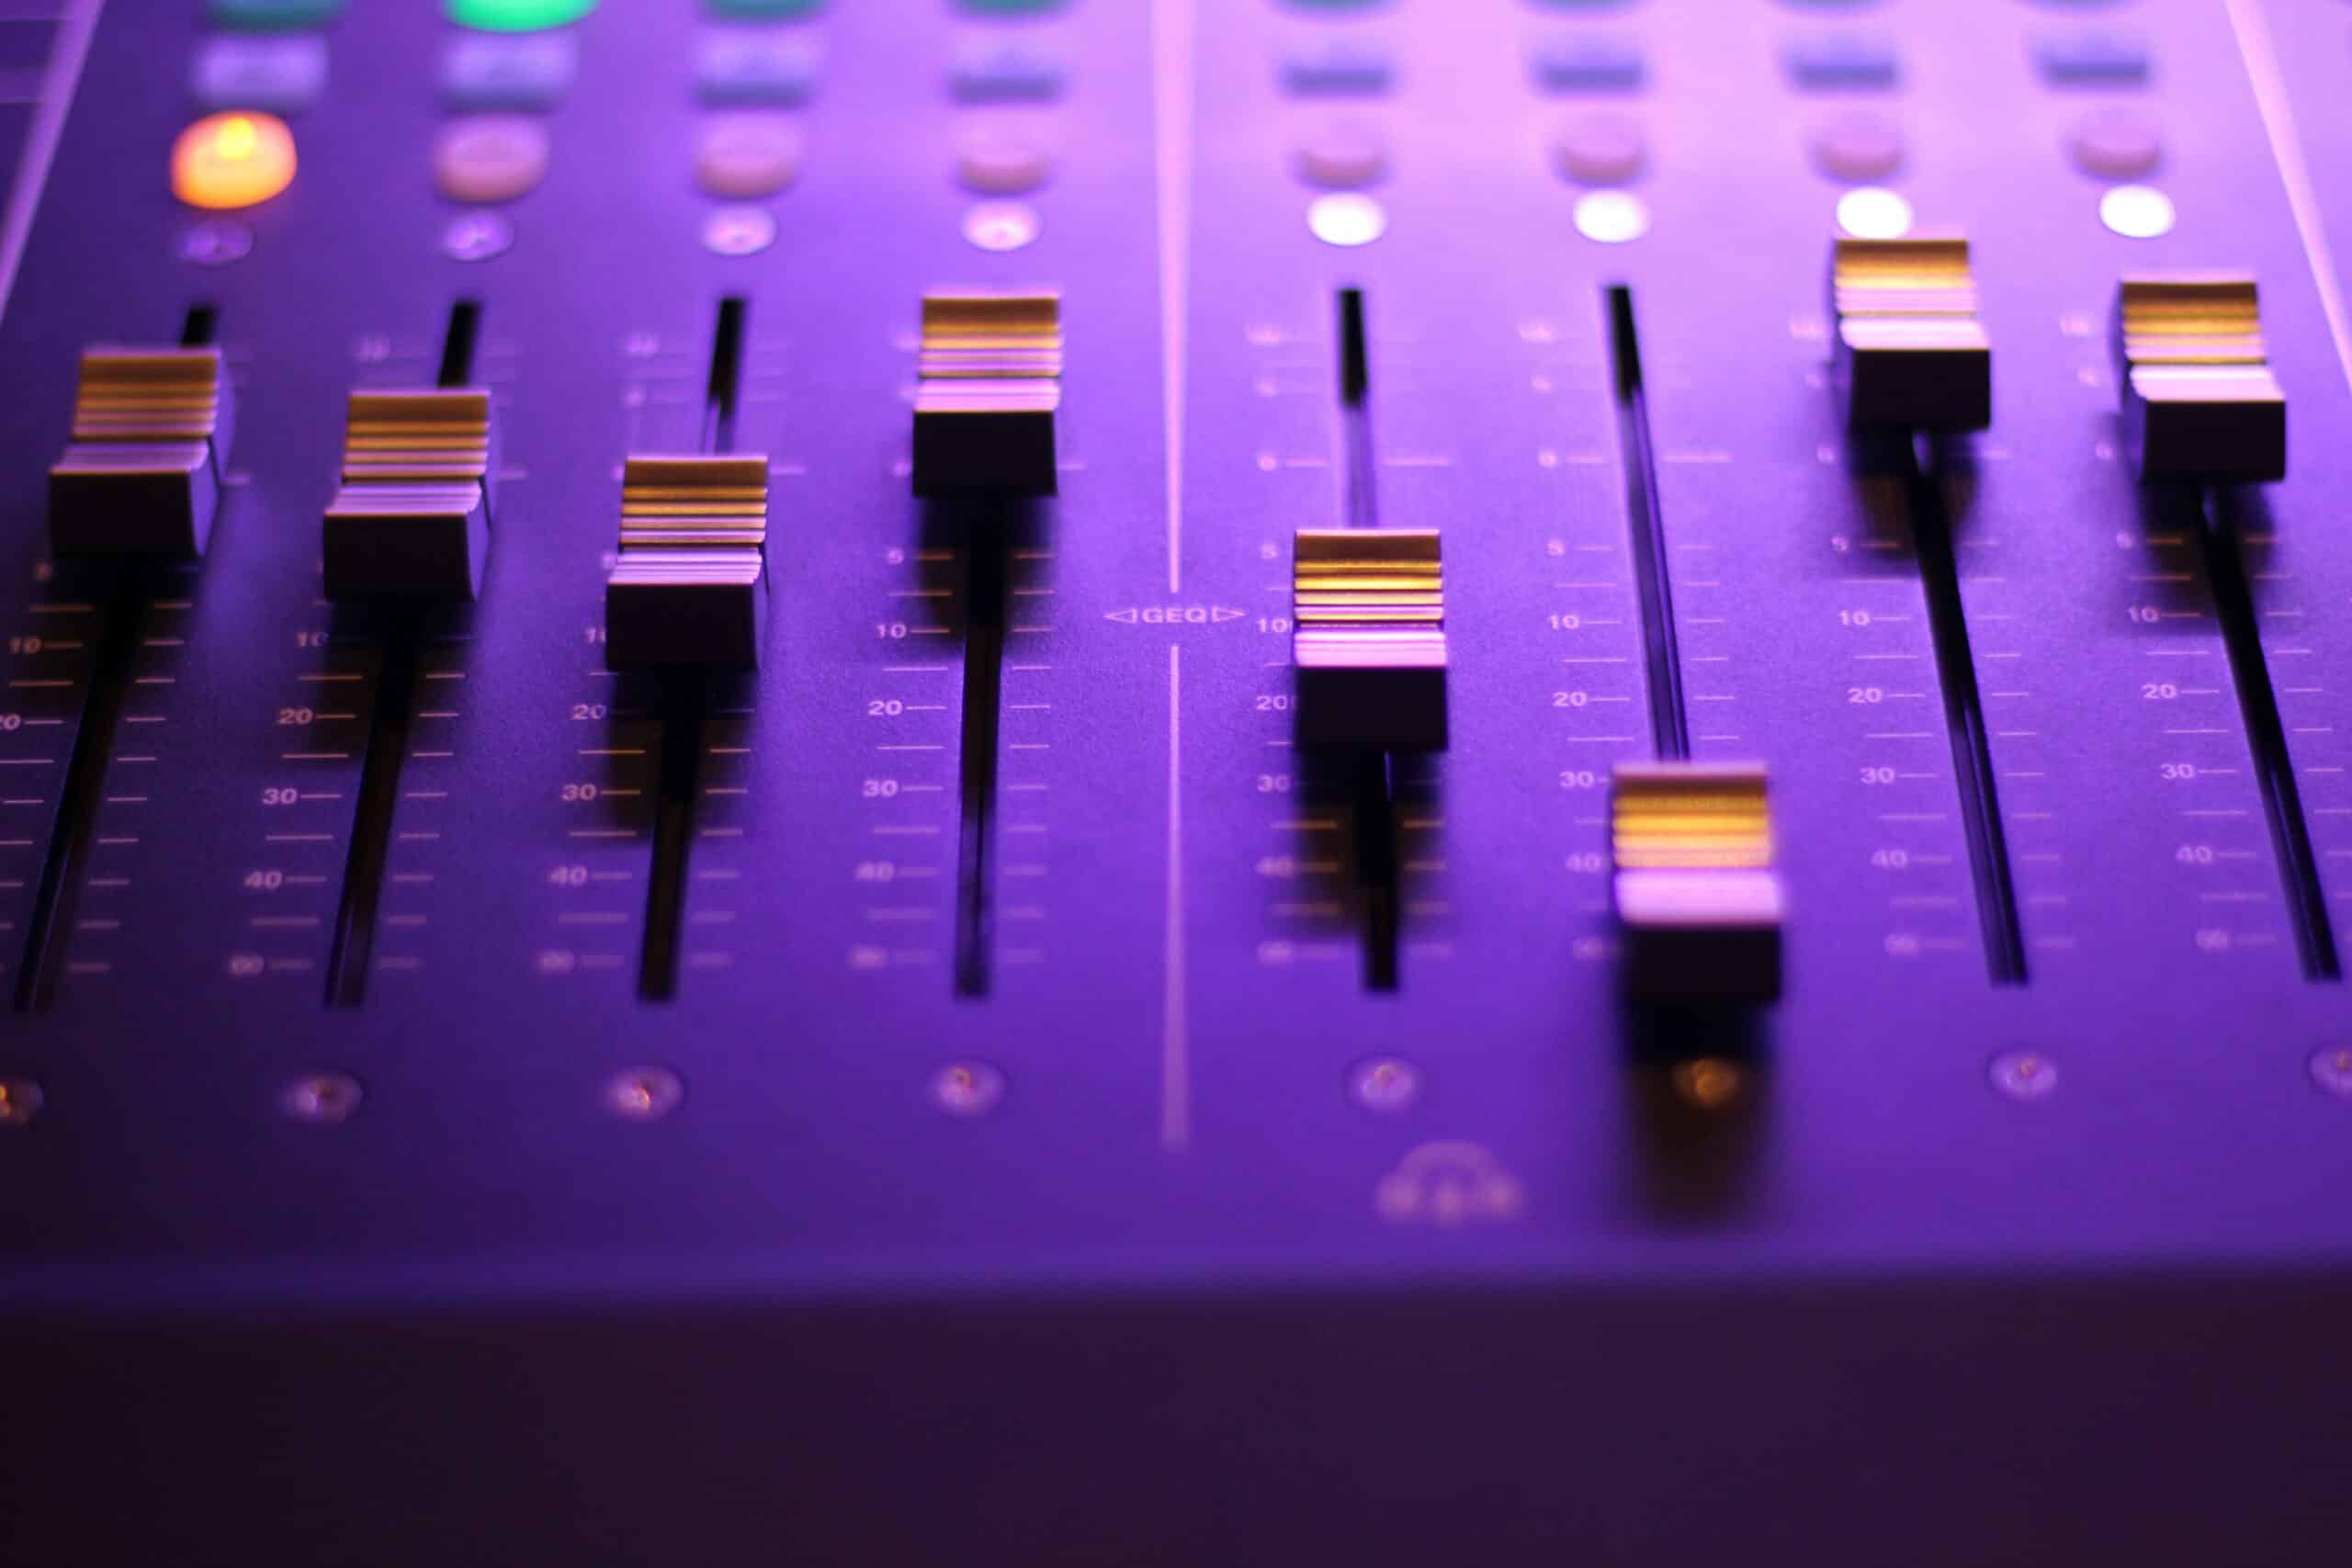 best free daw for windows - mixing console